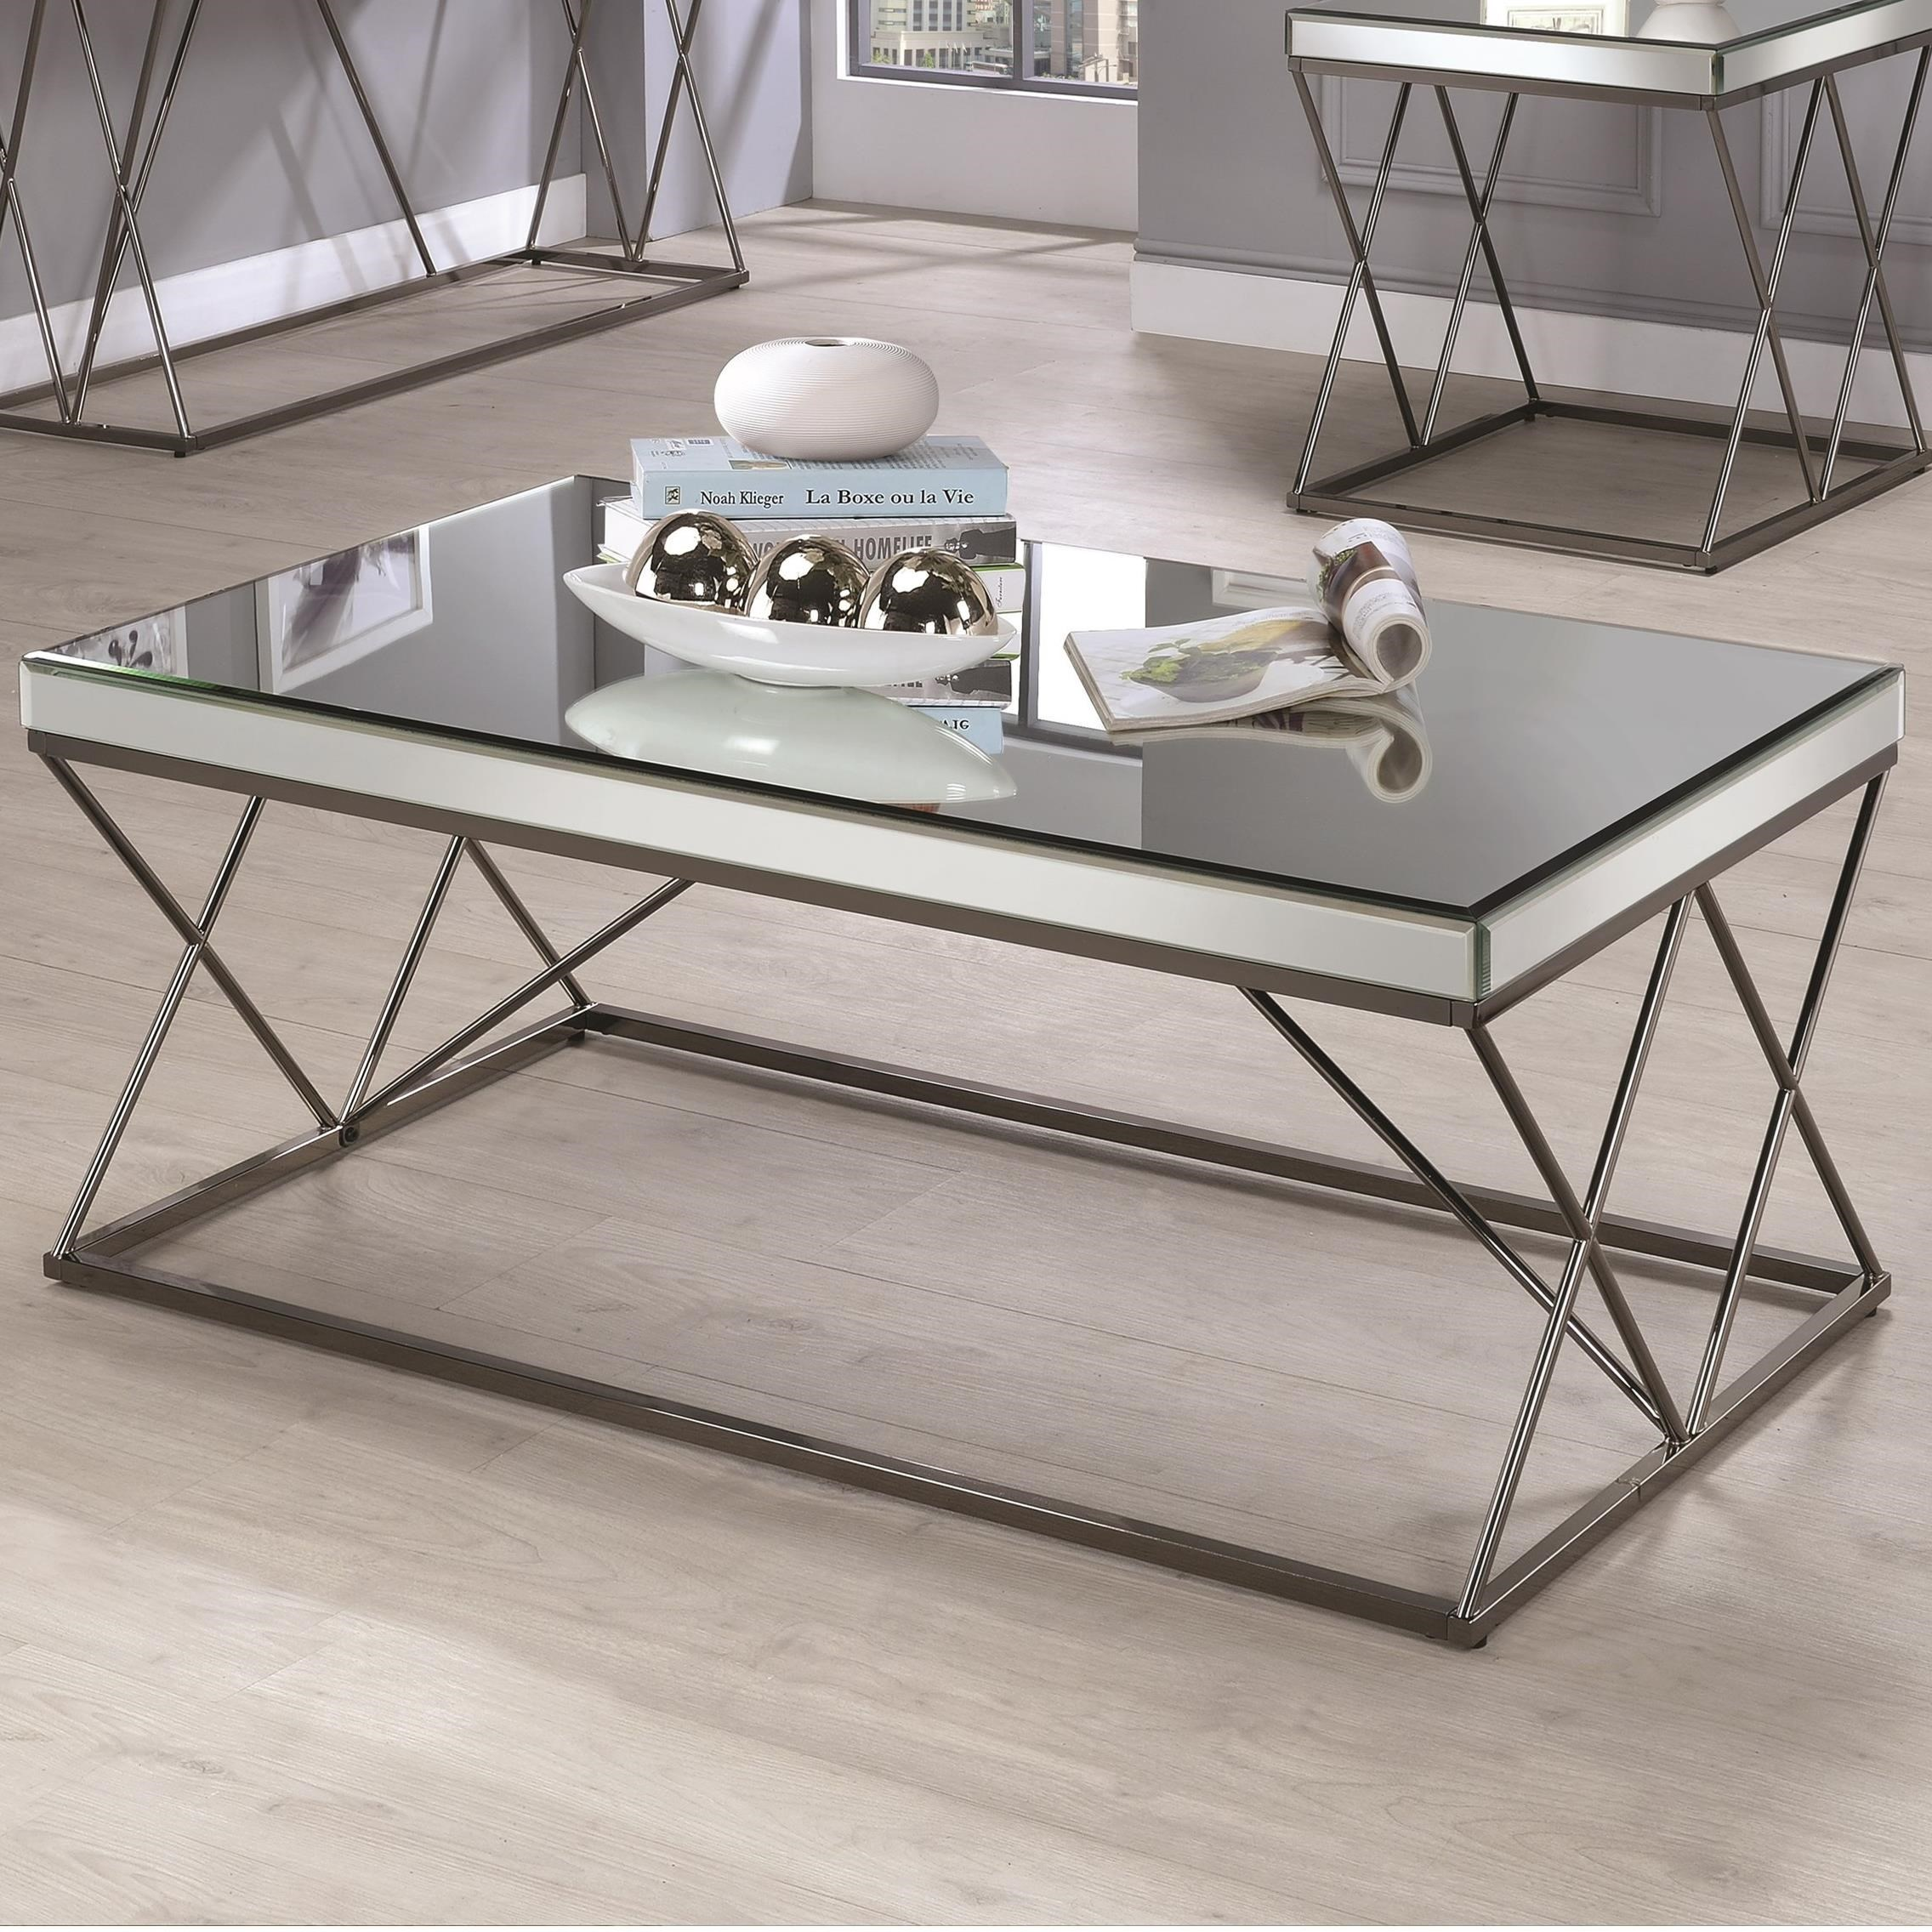 Contemporary Mirrored Furniture With Contemporary Mirrored Furniture Coaster 70547 Coffee Table With Metal Legs Fine Furniture Contemporary Mirrored Furniture Furniture